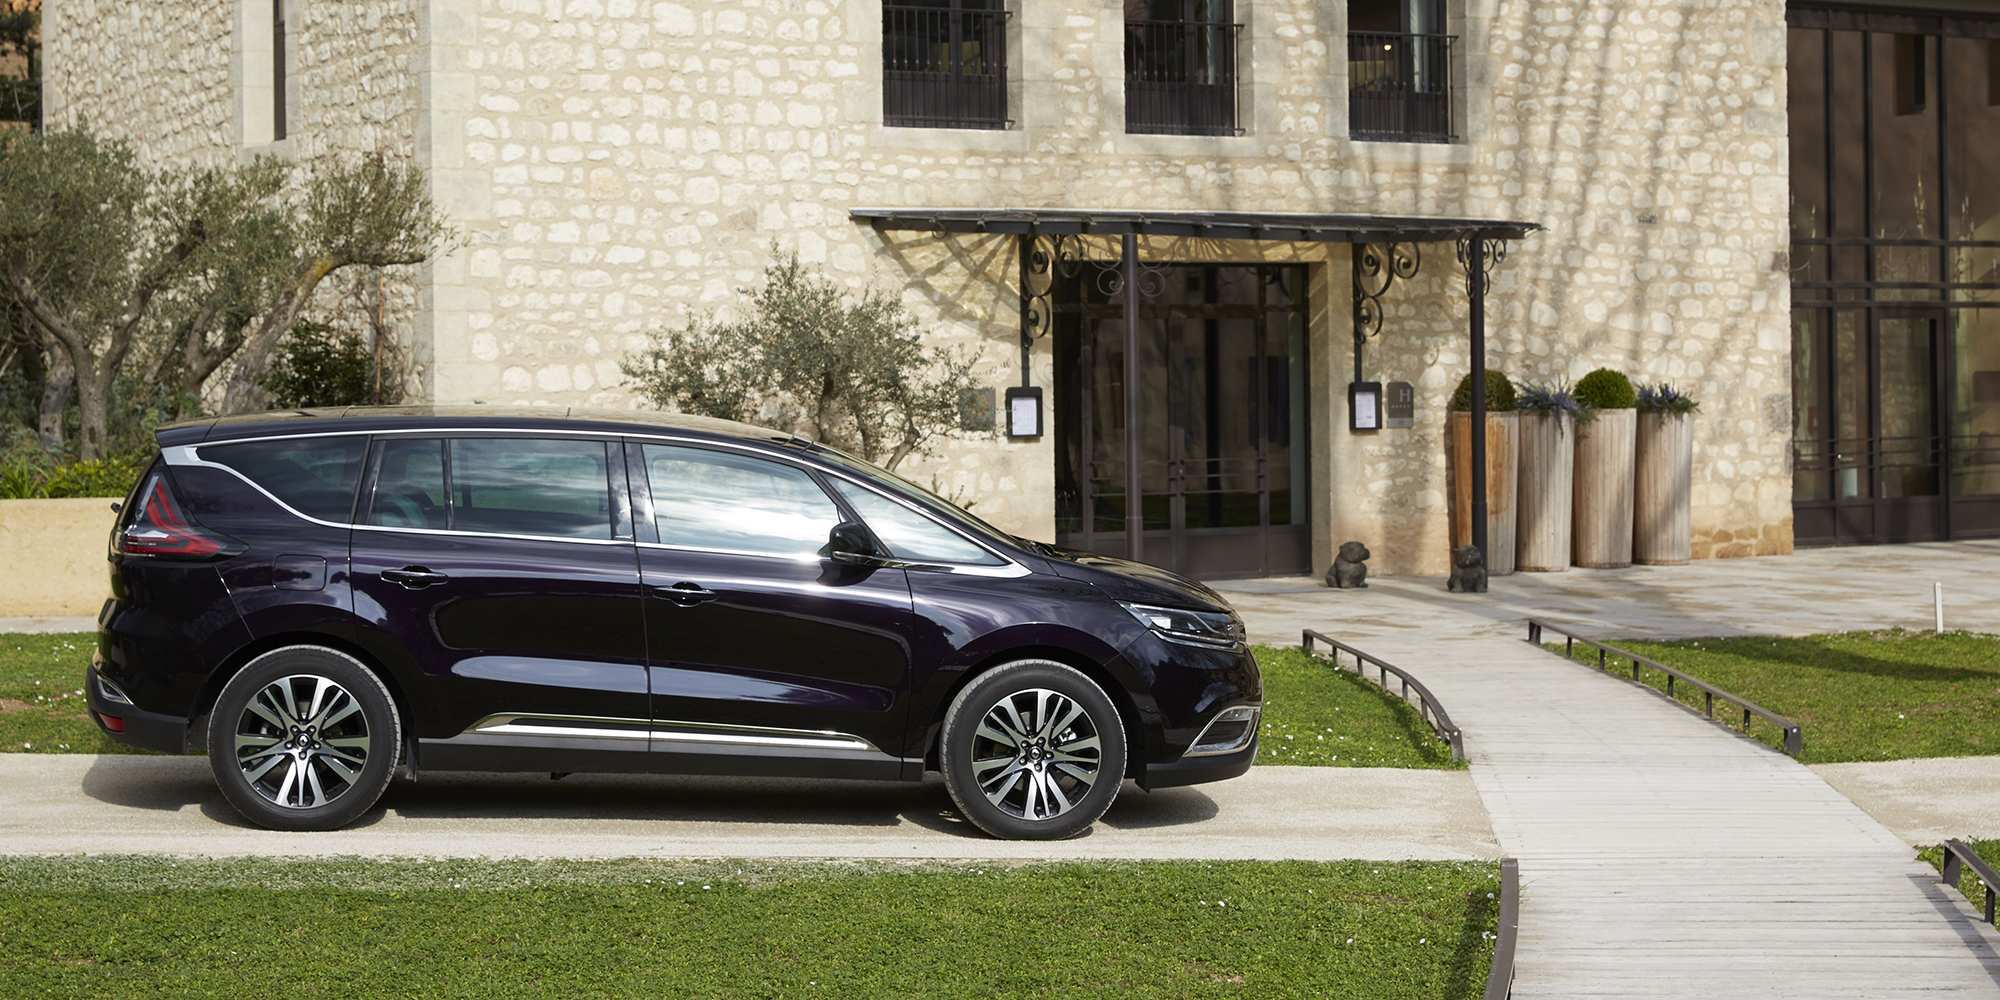 16 New Renault Espace 2019 Redesign and Concept for Renault Espace 2019